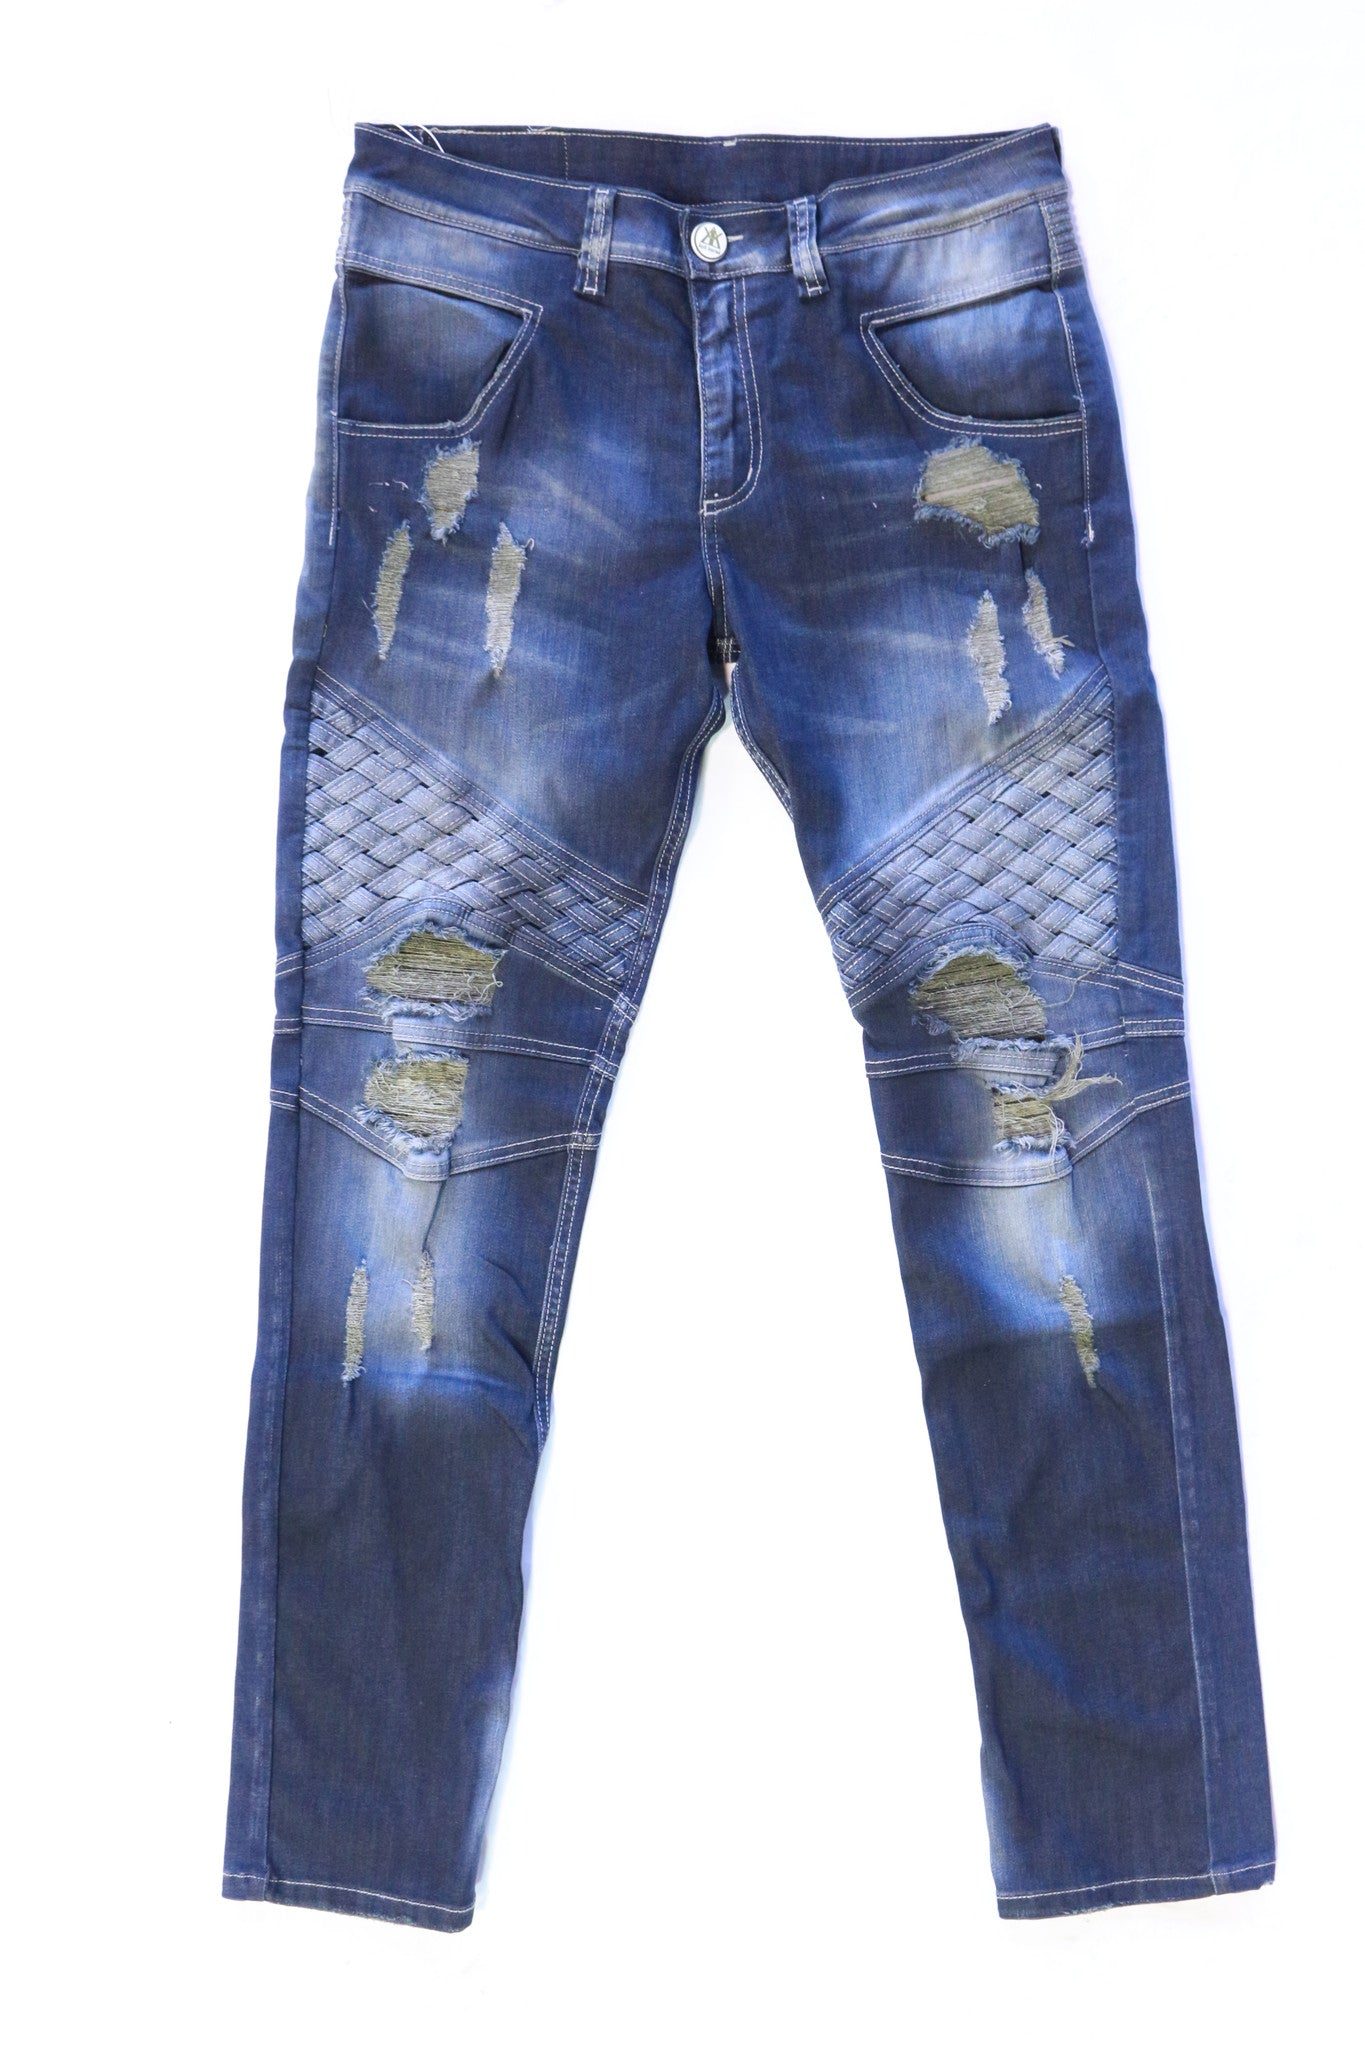 Kali Kartel Premium Denim Jeans u2013 The Shop 147